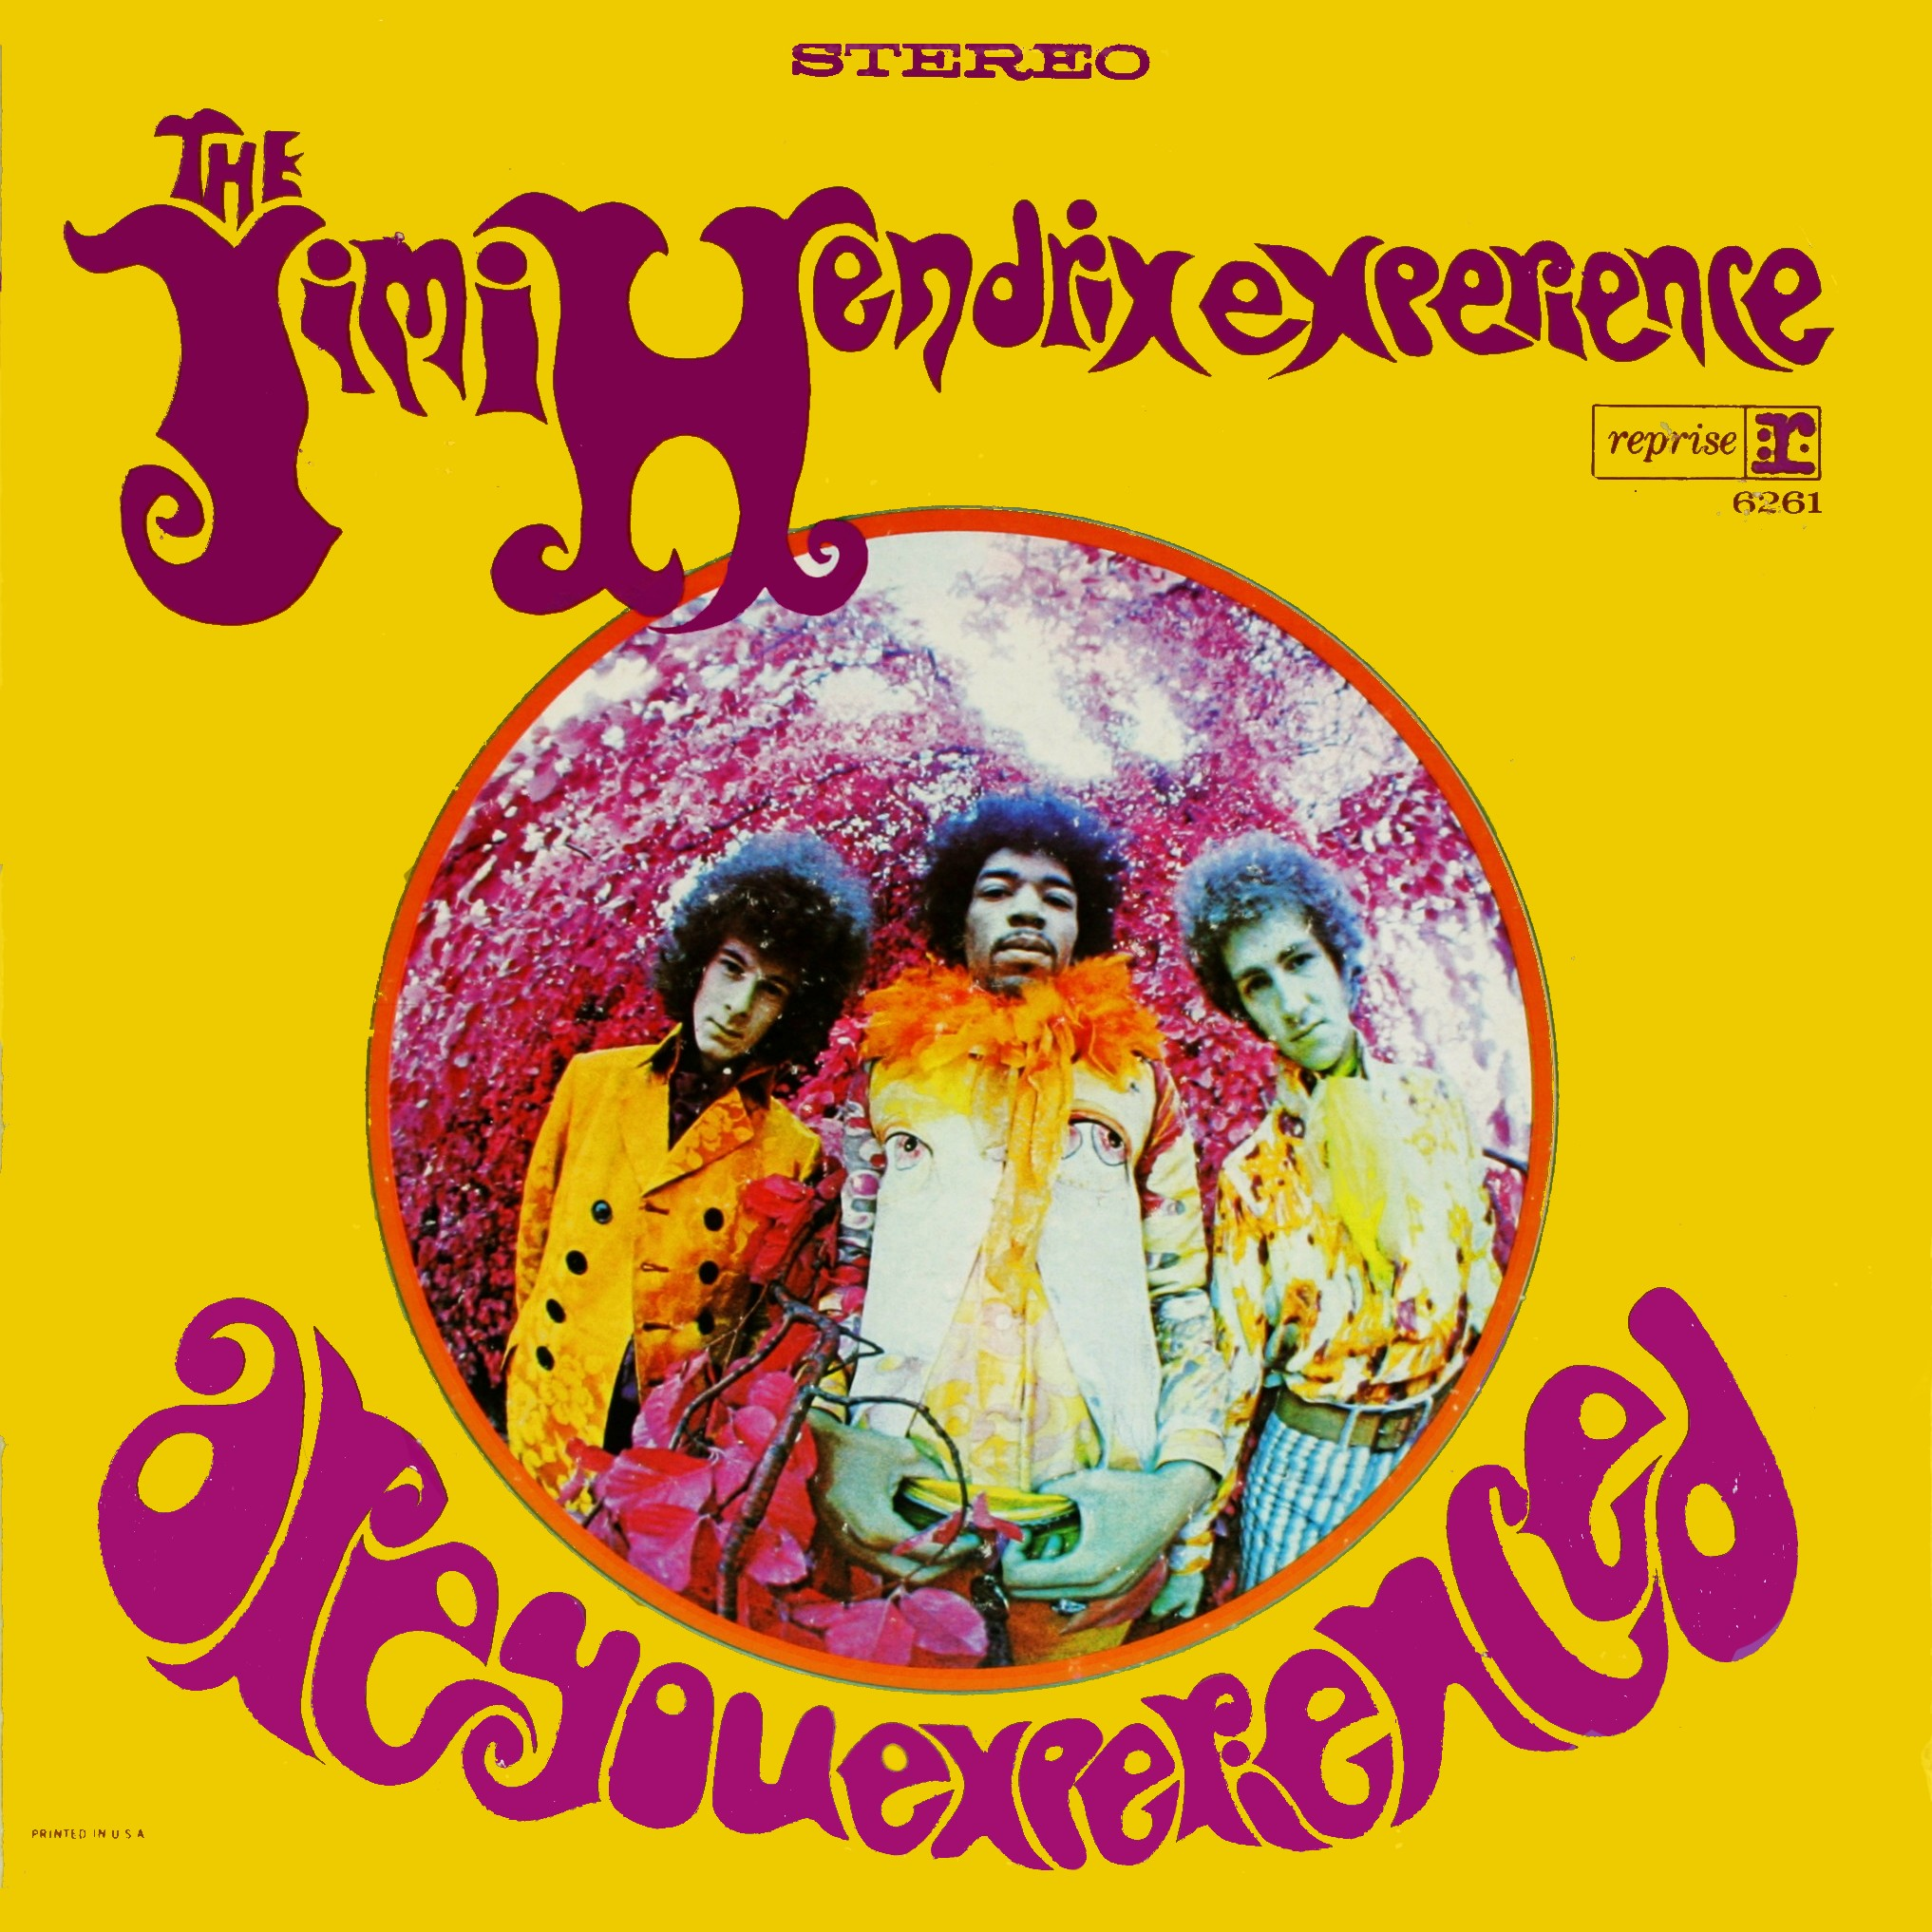 Jimi Hendrix Experience – Are You Experienced US Version The 100 Greatest Albums of All Time